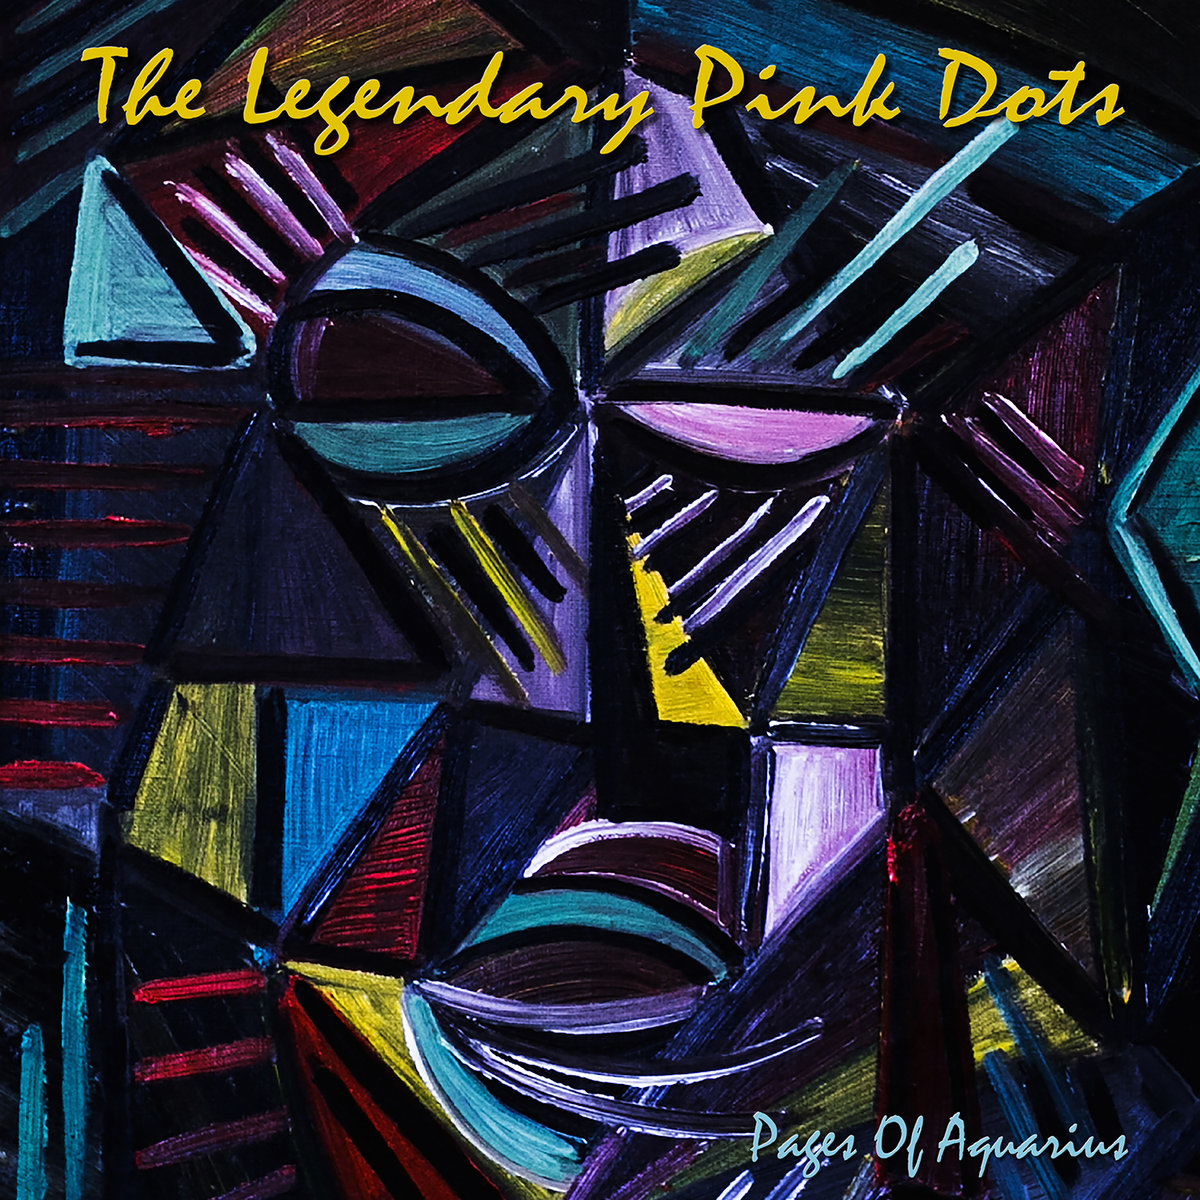 The Legendary Pink Dots,